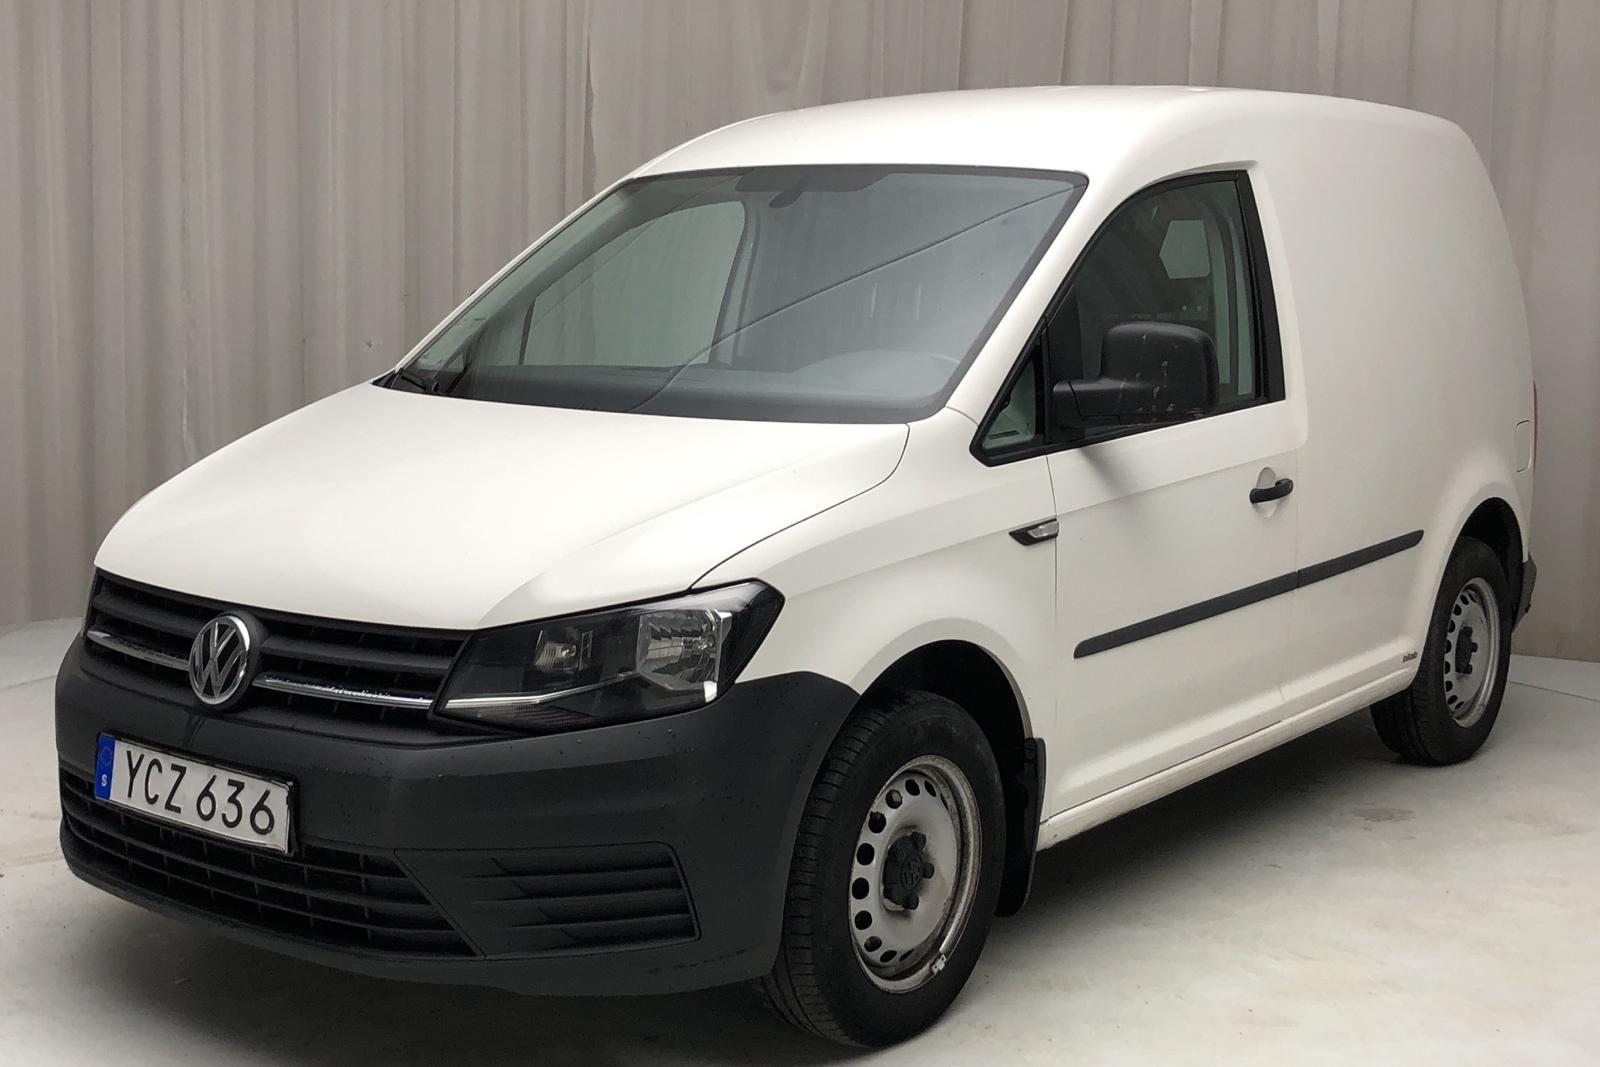 VW Caddy 2.0 TDI Skåp (75hk) - 0 km - Manual - white - 2016